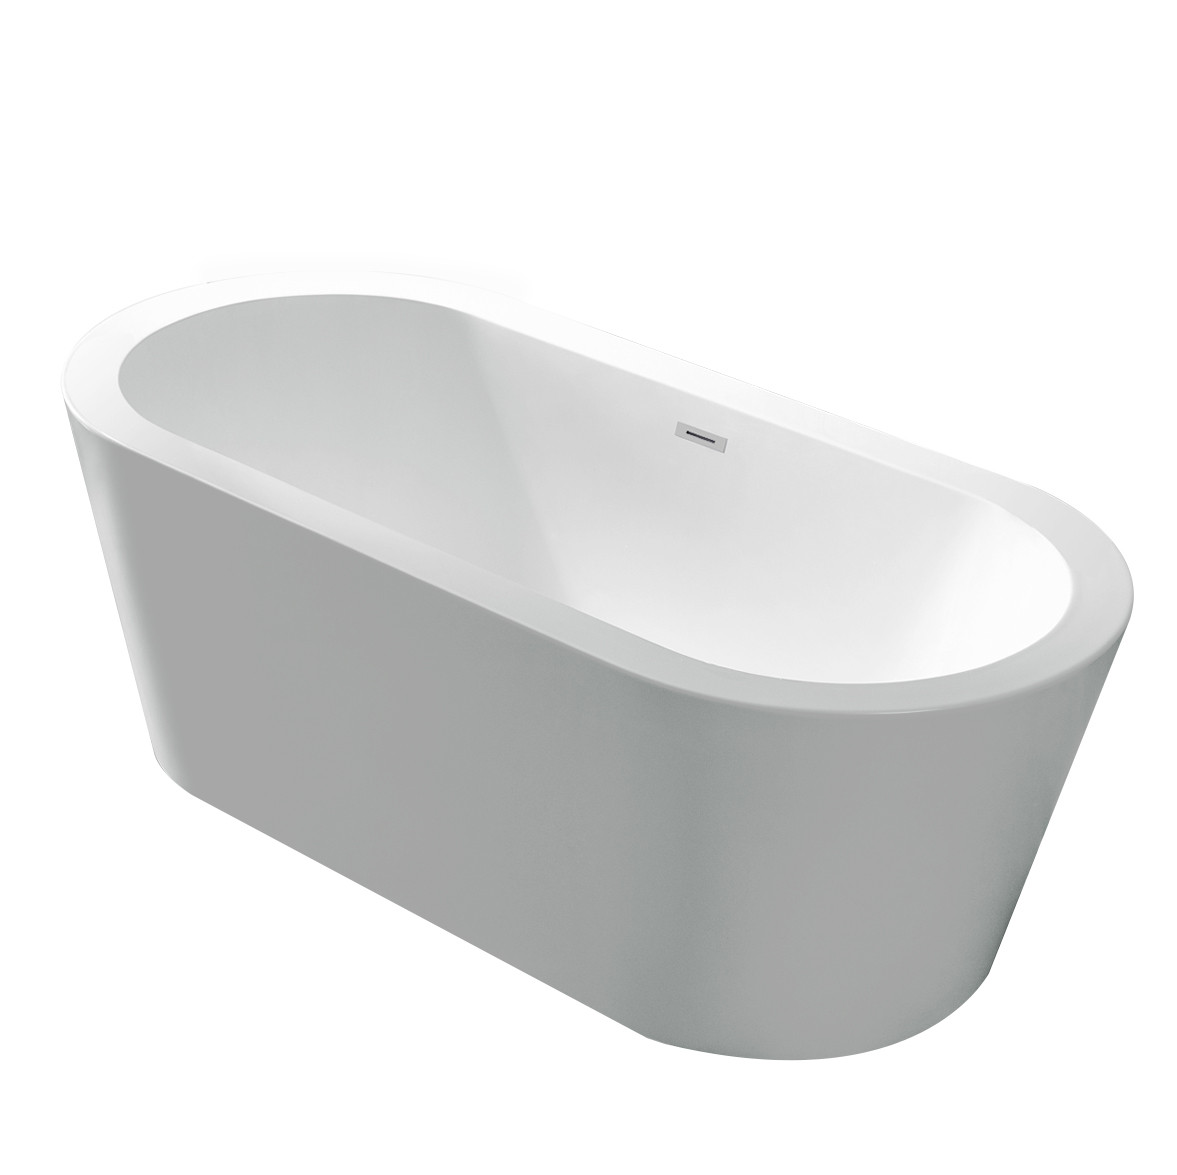 Anzzi FT-AZ104 Ares 5.5 ft. Center Drain Freestanding Bathtub Glossy White